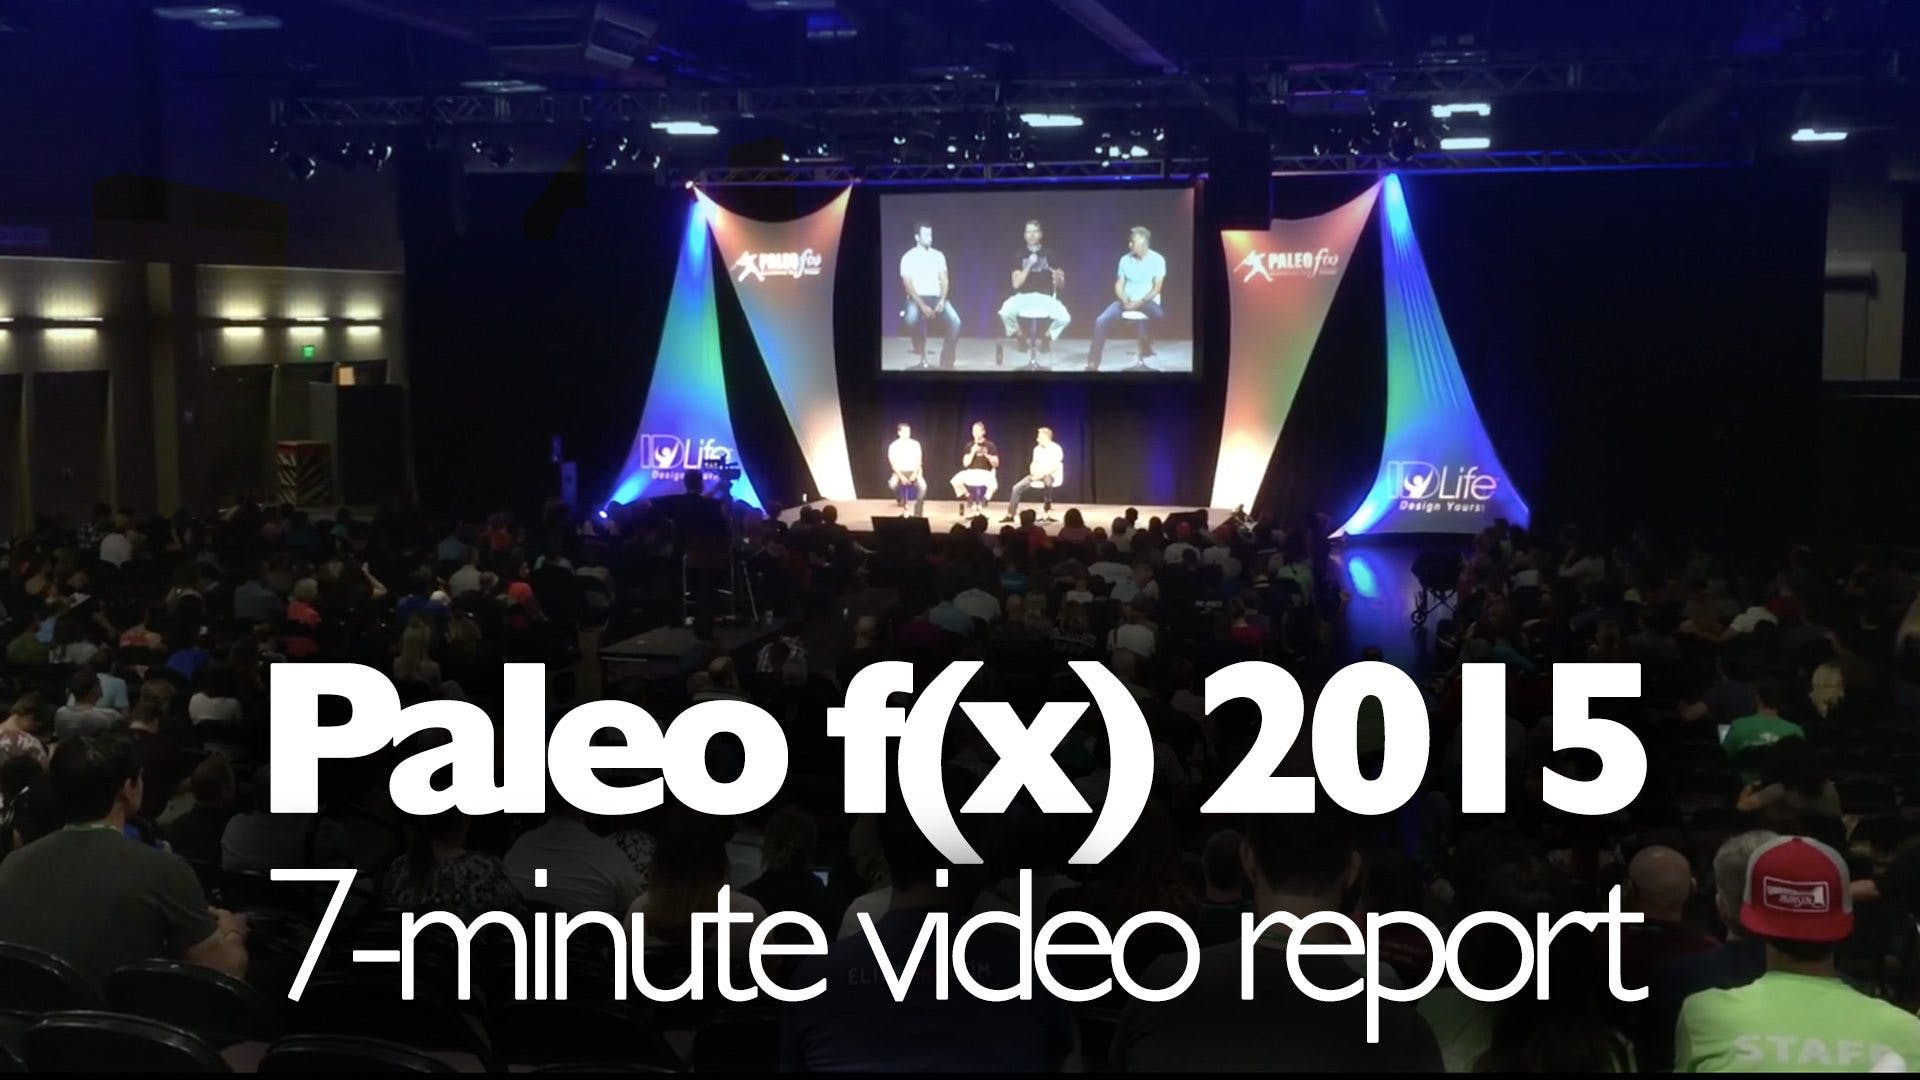 Paleo f(x) 2015 – Short Video Report